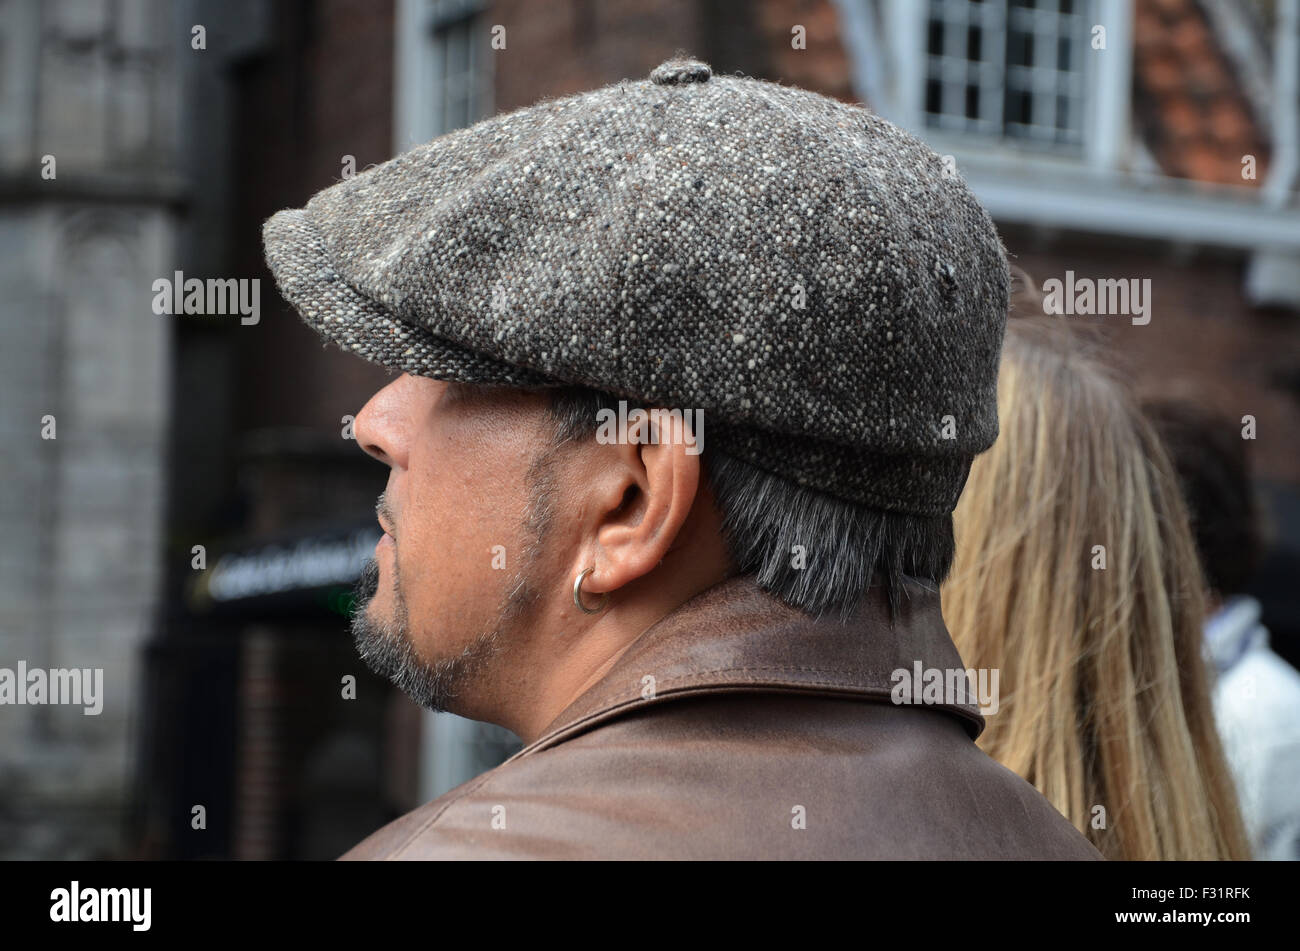 man wearing 8-panel newsboy cap (Stetson Donegal Stock Photo ... 3be12793e35